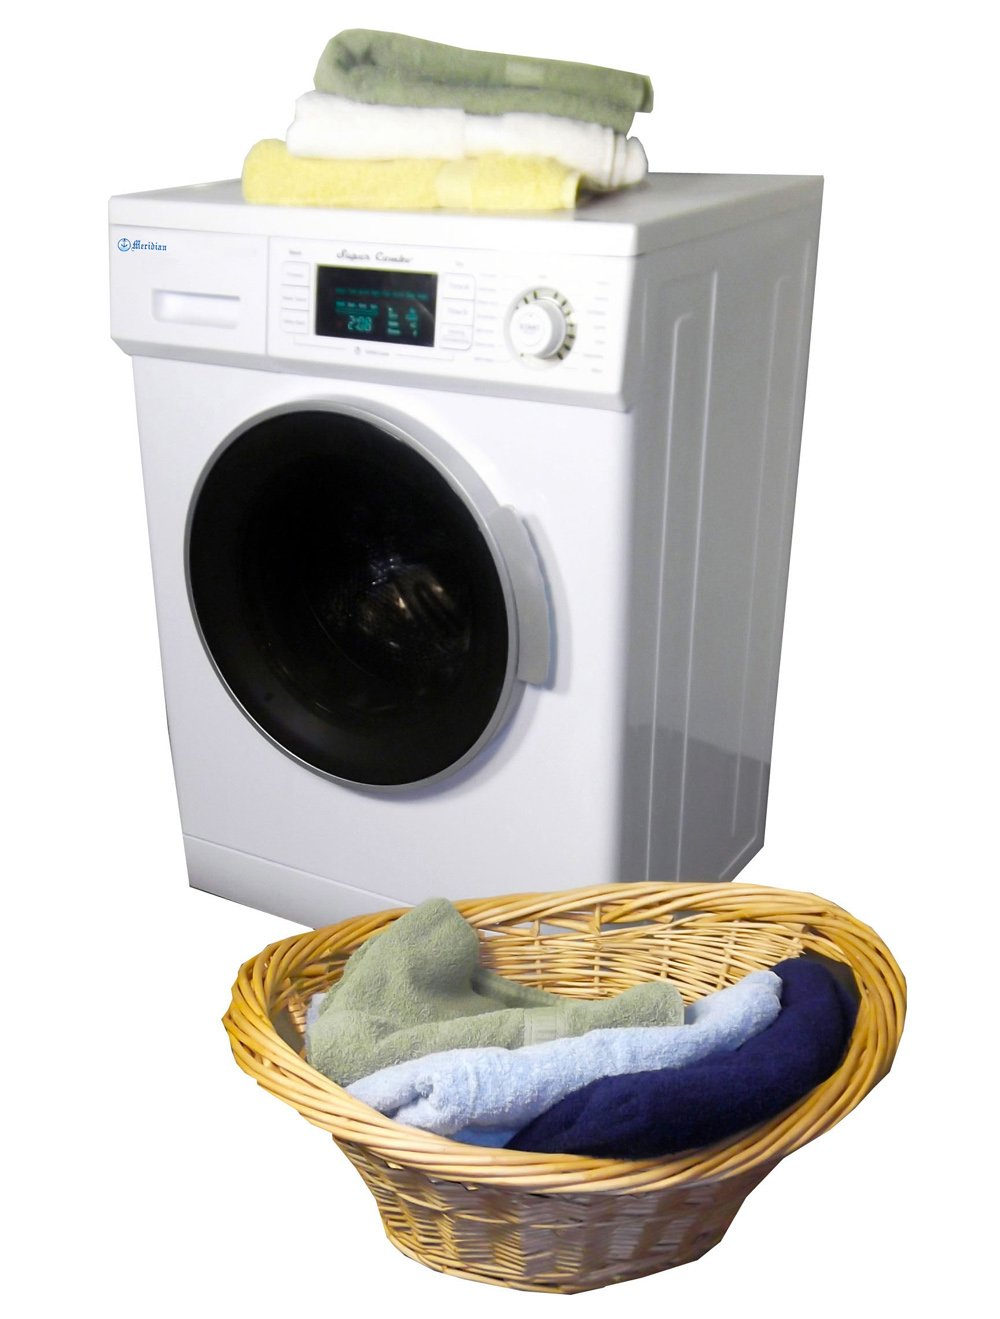 Amazon.com: Meridian Convertible Venting Ventless Combo Washer ...